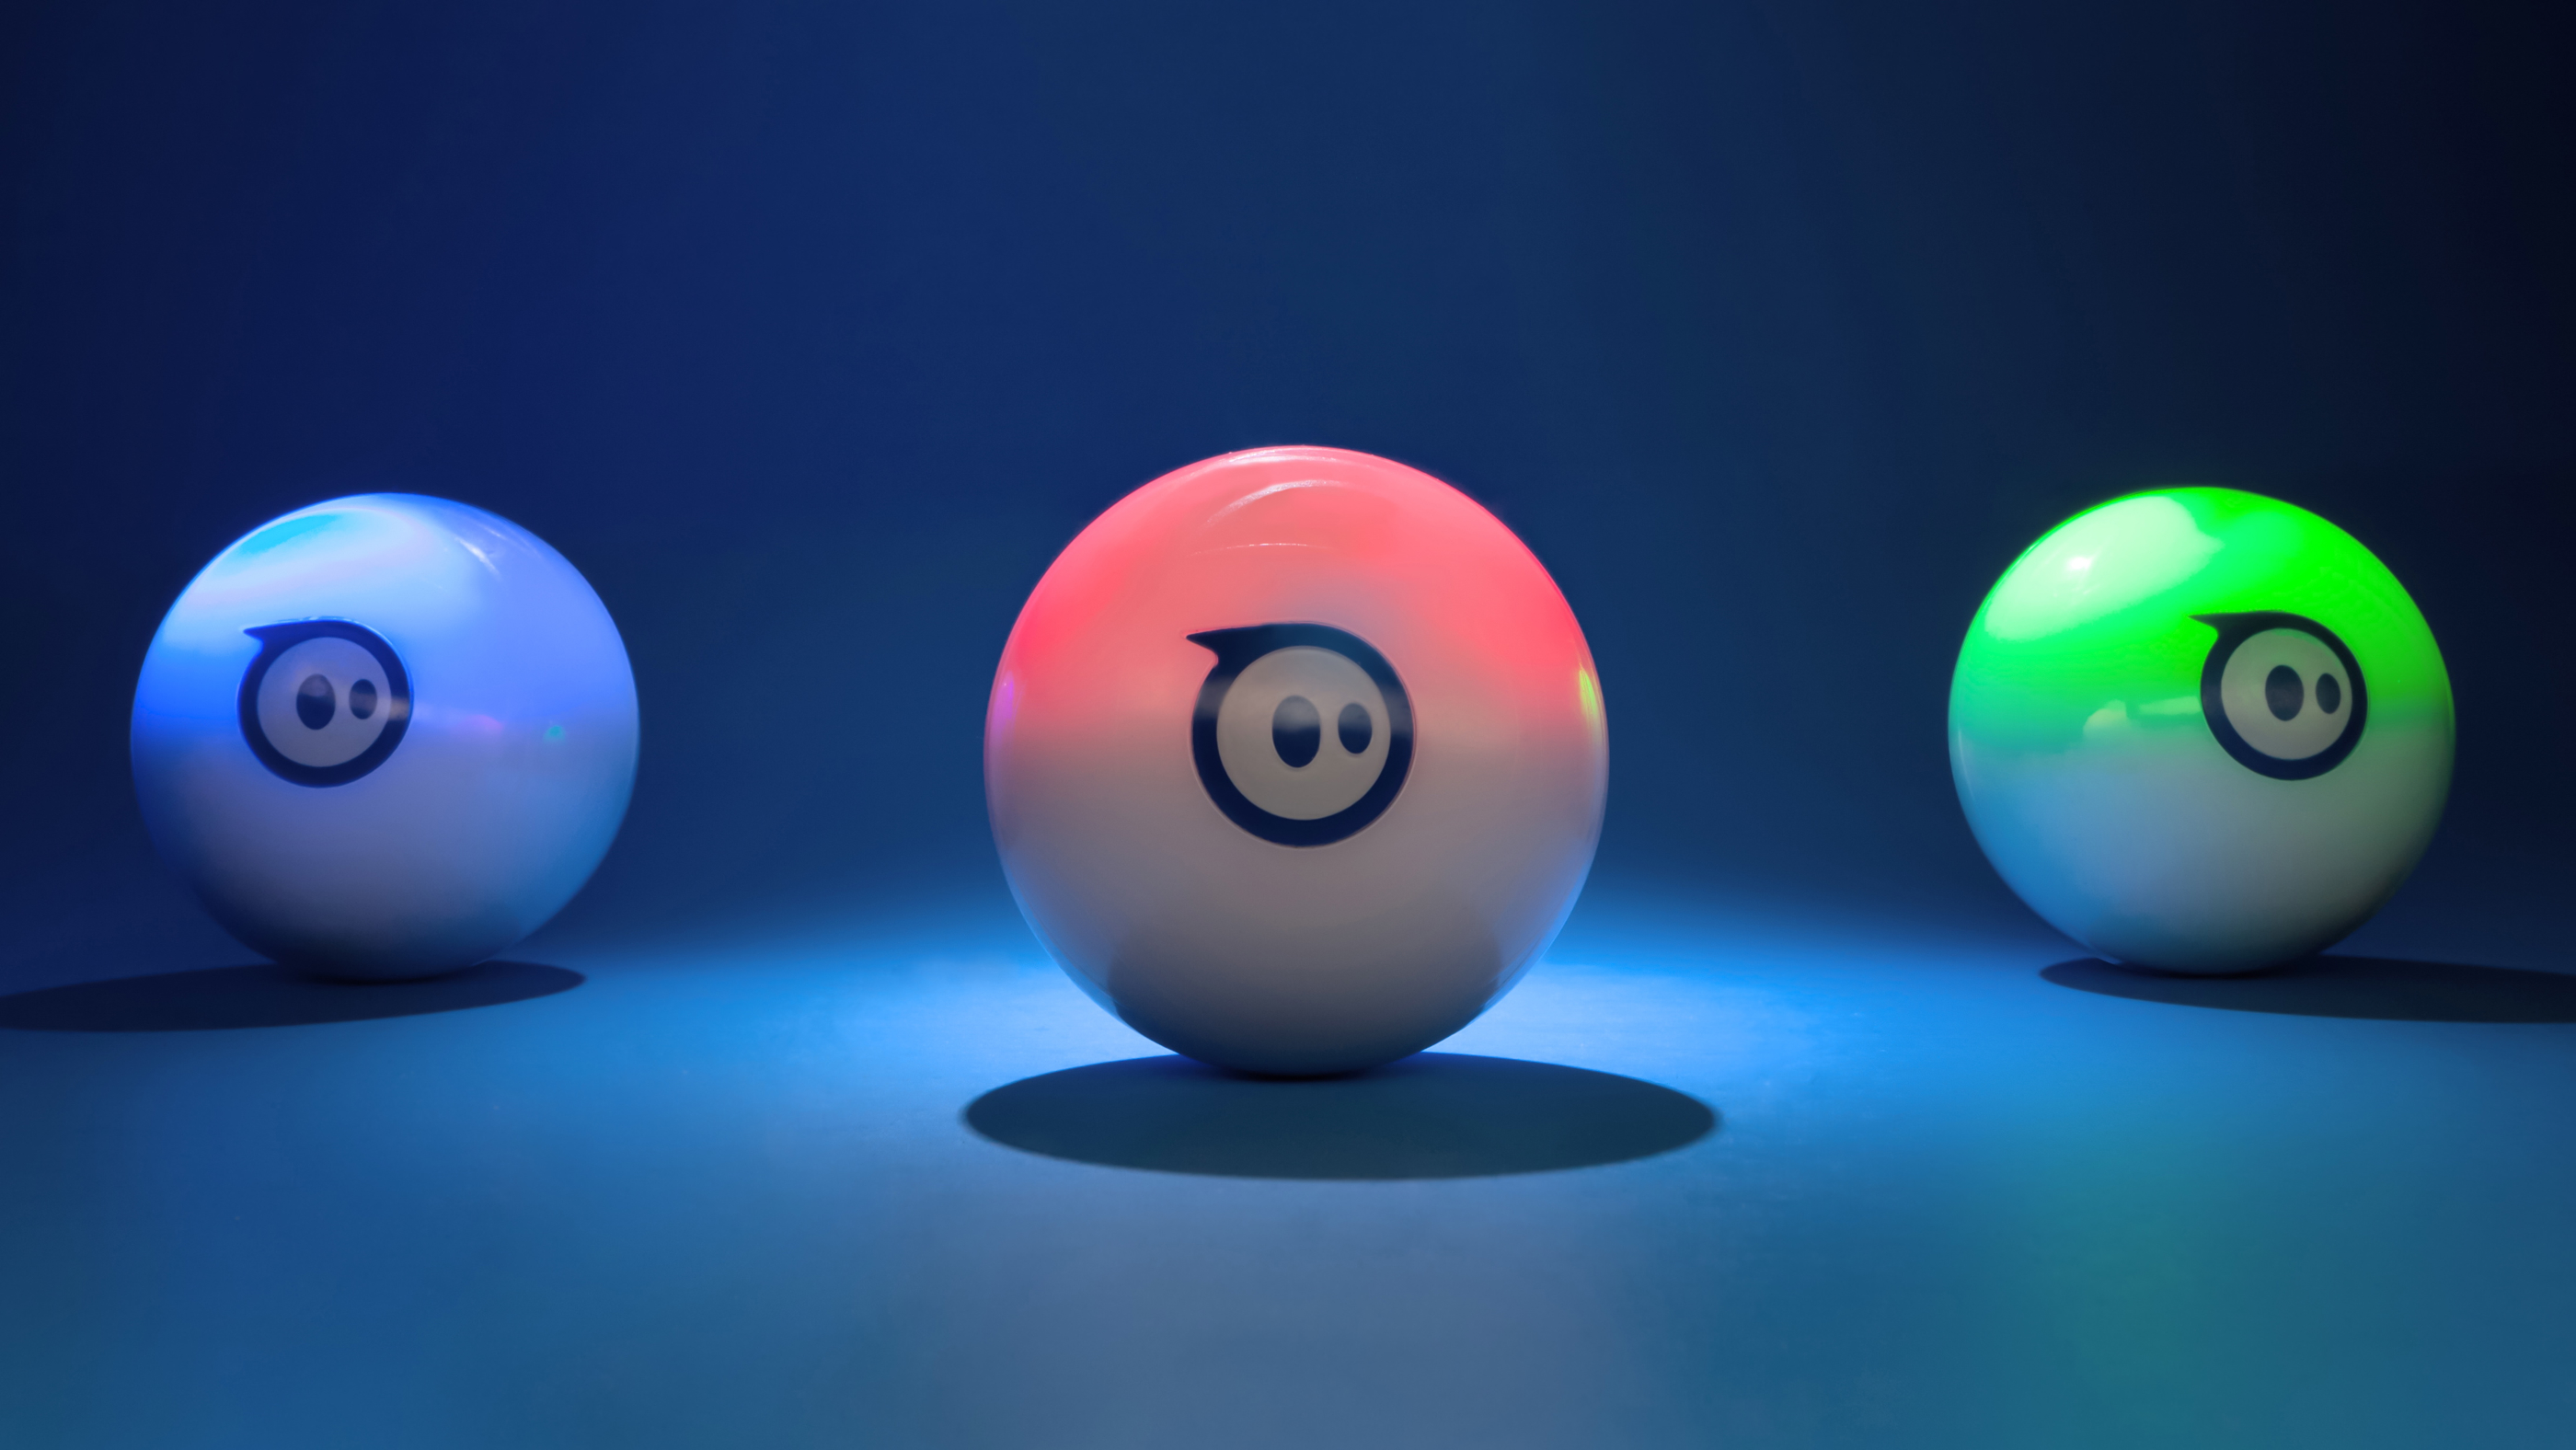 President Obama's new favorite toy Sphero gets new apps, will open up to devs on upcoming hack ...